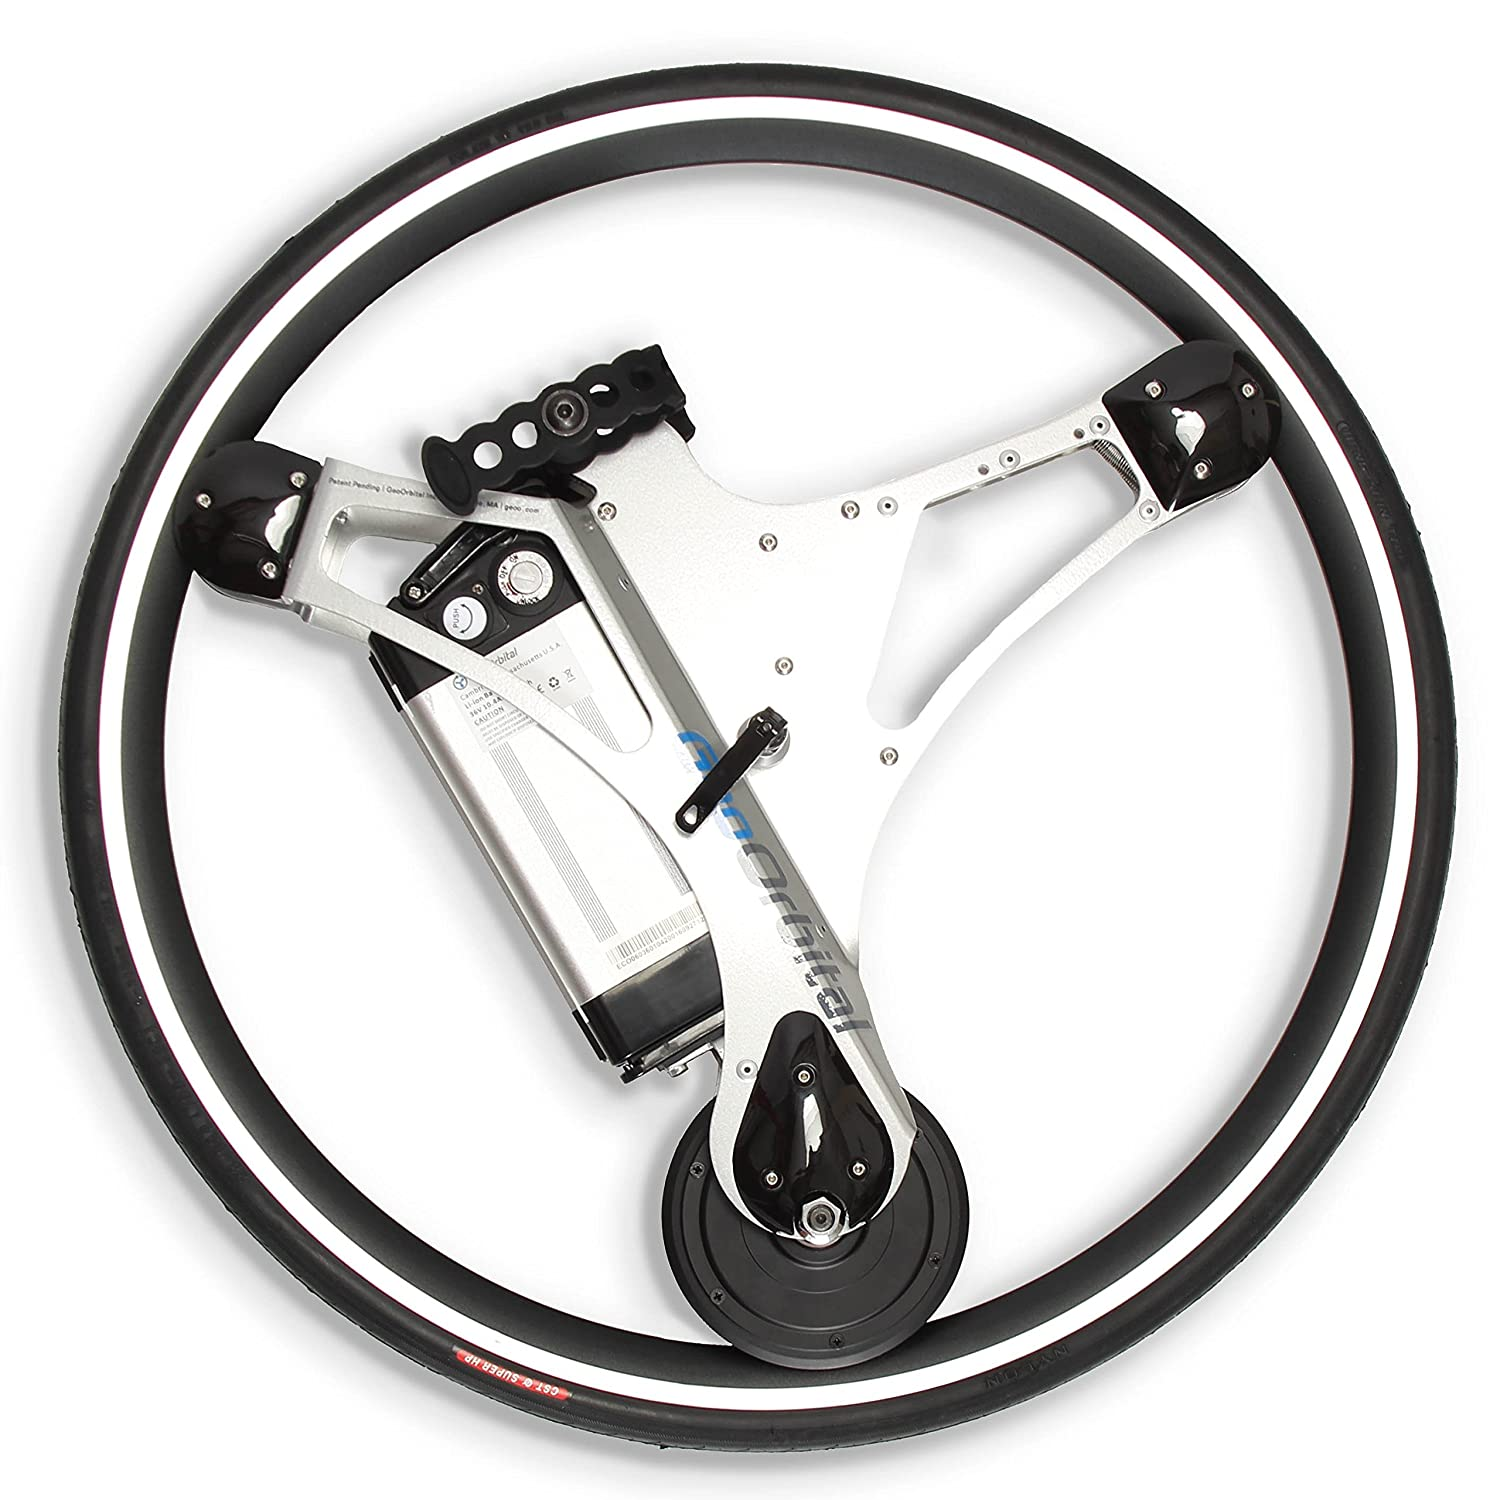 GeoOrbital(電動自転車のホイール) Electric-Powered Bicycle Wheel - Turn Any Regular Bike Into a Self-Moving Vehicle, No Pedaling Required (20mph, 500W Motor) - Easy 60 Second No-Tool Installation 700c / 28 Inch (Silver)  B072RD1VKX